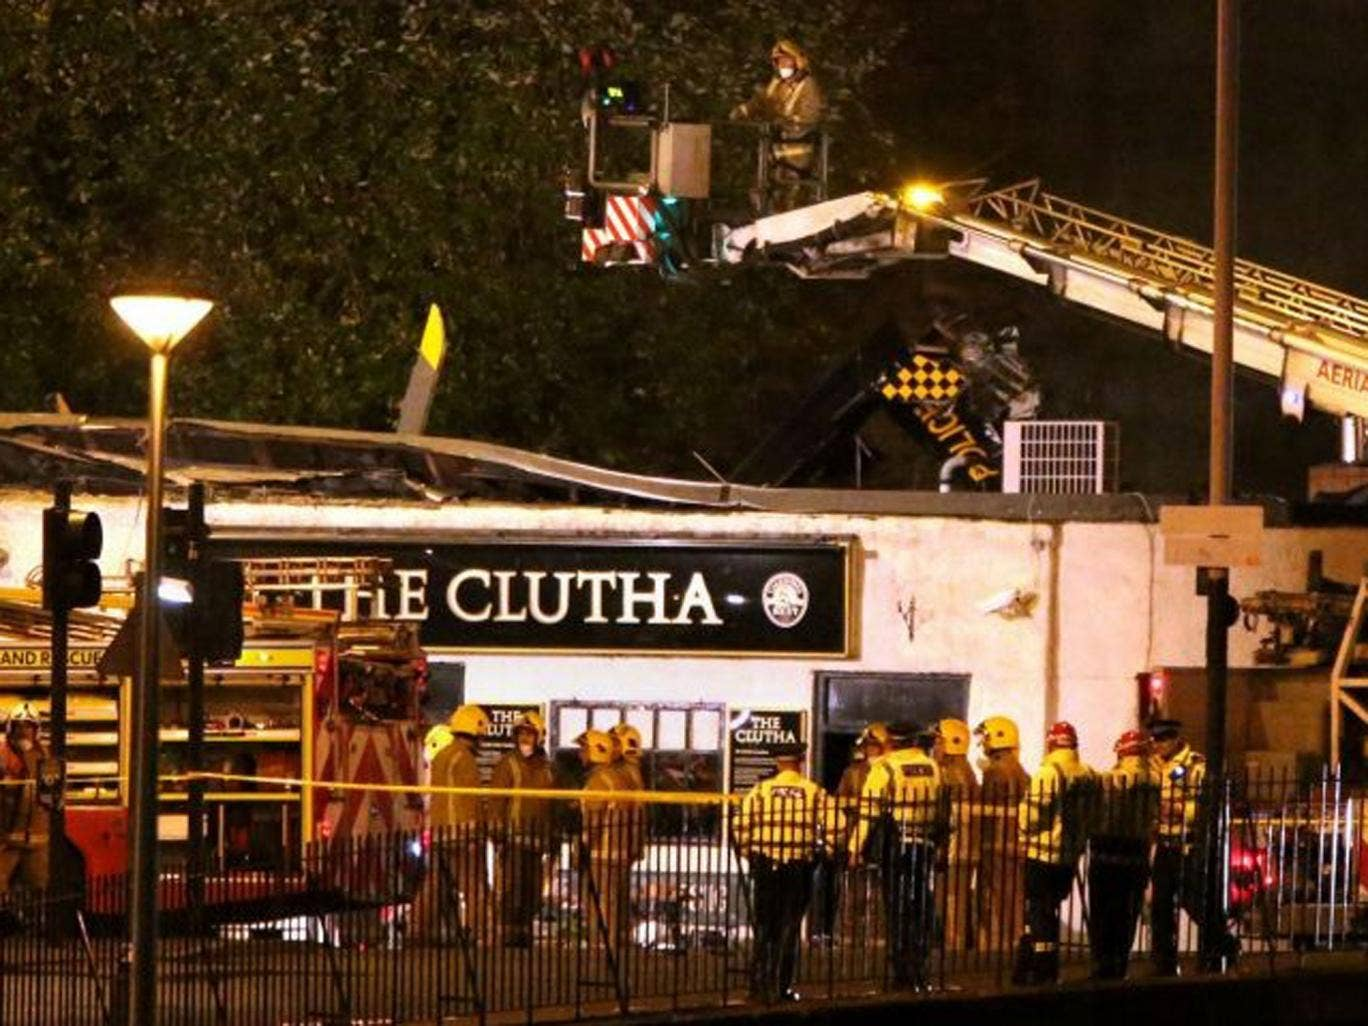 File photo, dated 30 November, at the scene of the helicopter crash at the Clutha Bar in Glasgow